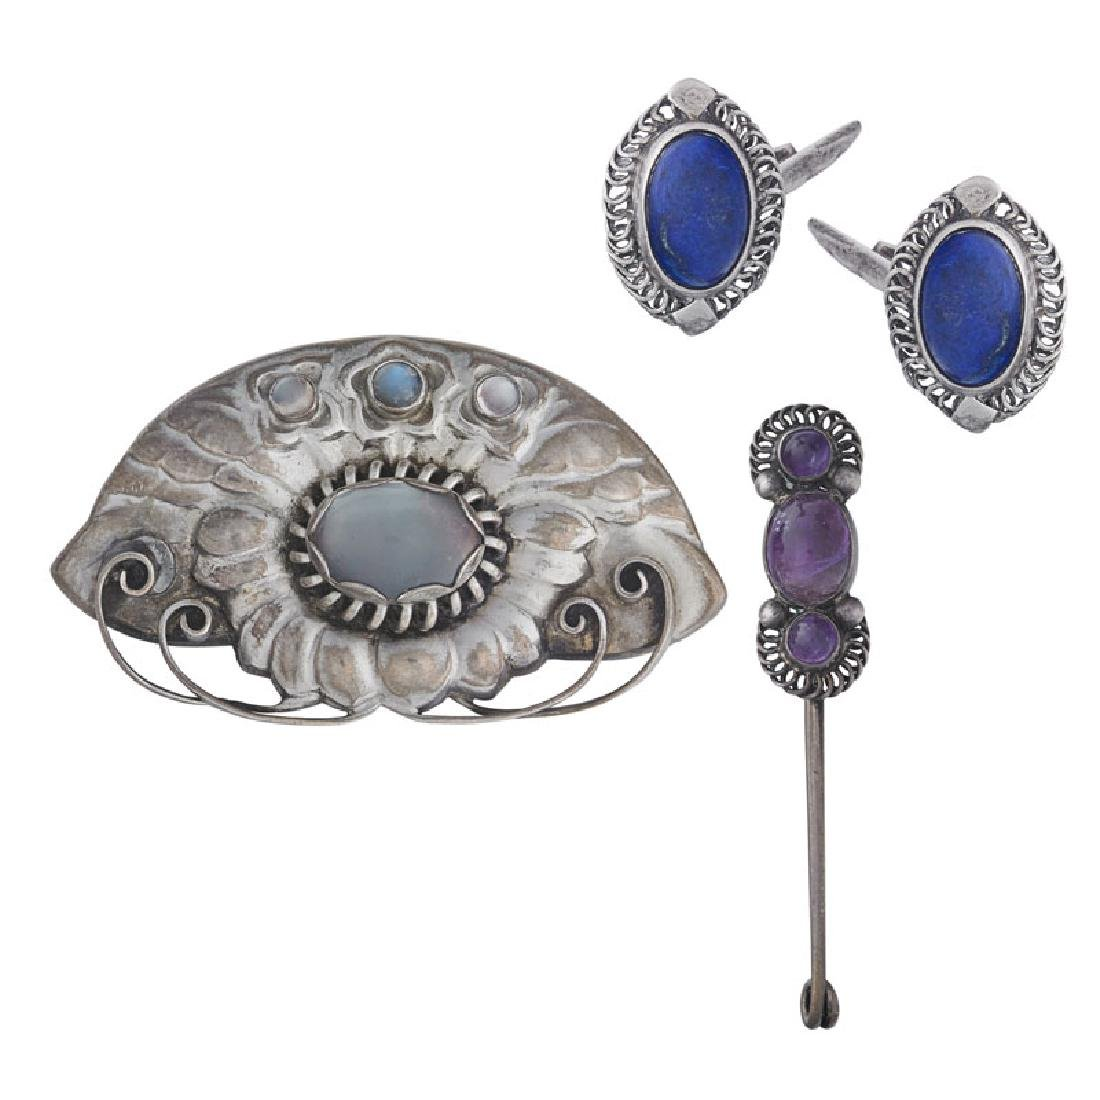 GEORG JENSEN EARLY SILVER JEWELRY, ASHBEE INFLUENCES